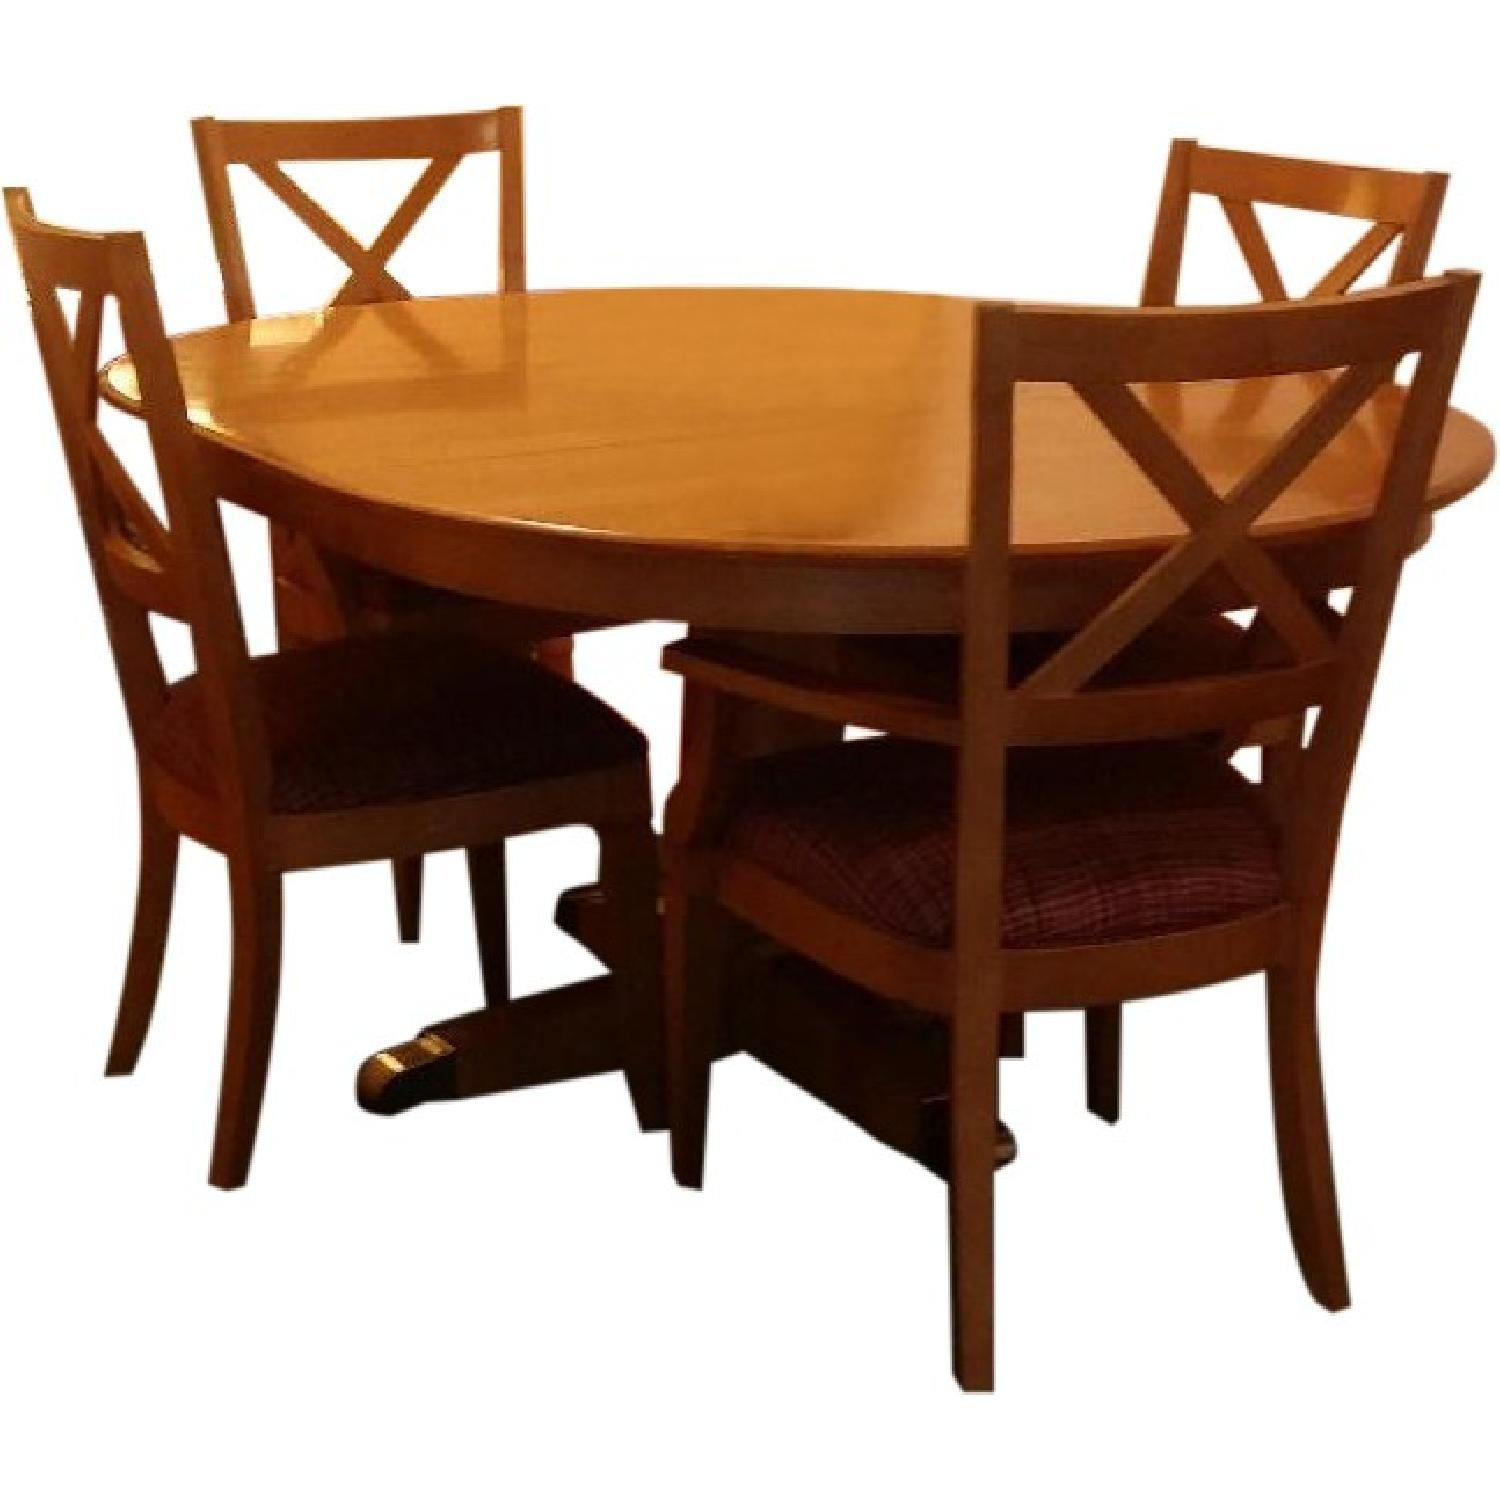 Ethan Allen Elements Dining Table  House Stuff  Pinterest Cool Ethan Allen Dining Room Tables Review